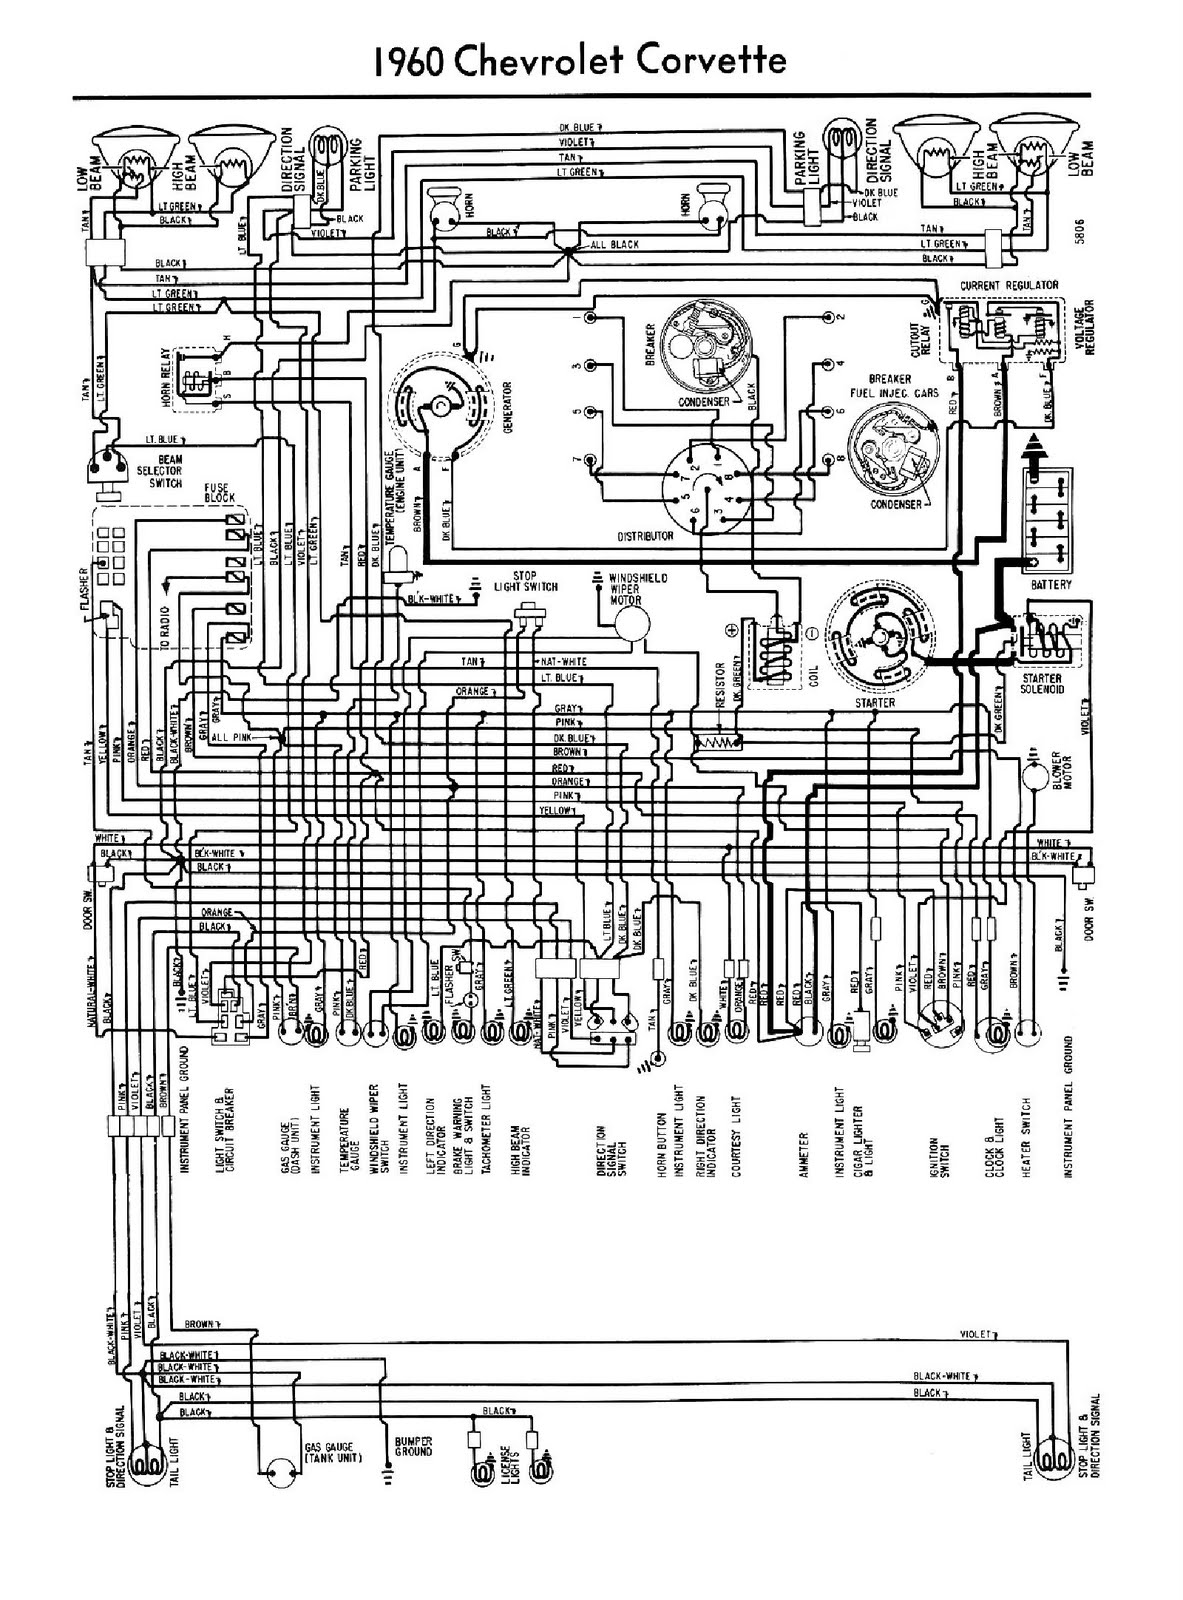 hight resolution of 1957 pontiac wiring diagram wiring diagram todays 1967 pontiac wiring diagram 1957 pontiac wire diagram wiring